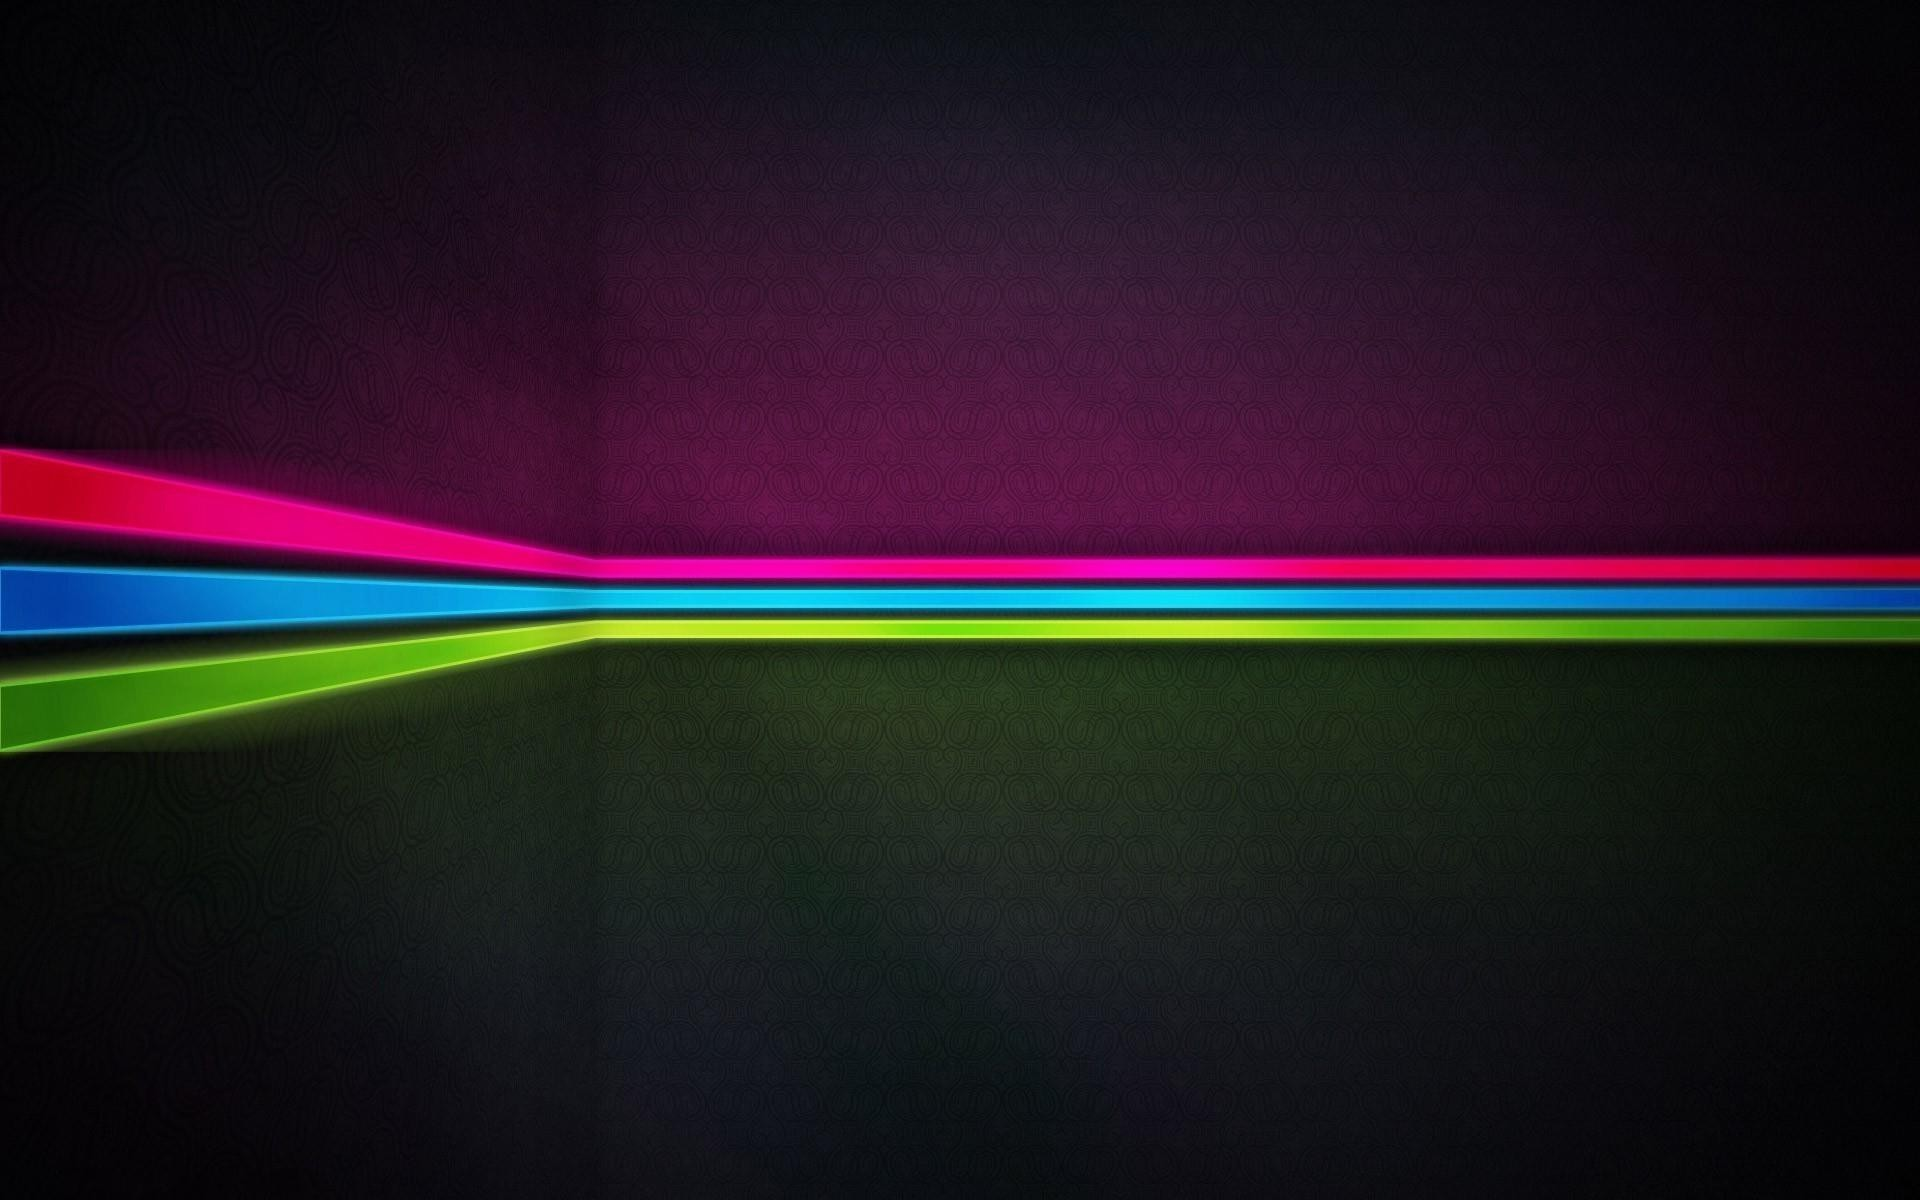 Neon Green Wallpaper For Android Data Src W Full C 6 2 497916 Abstract Neon Pink And Green 1920x1200 Wallpaper Teahub Io